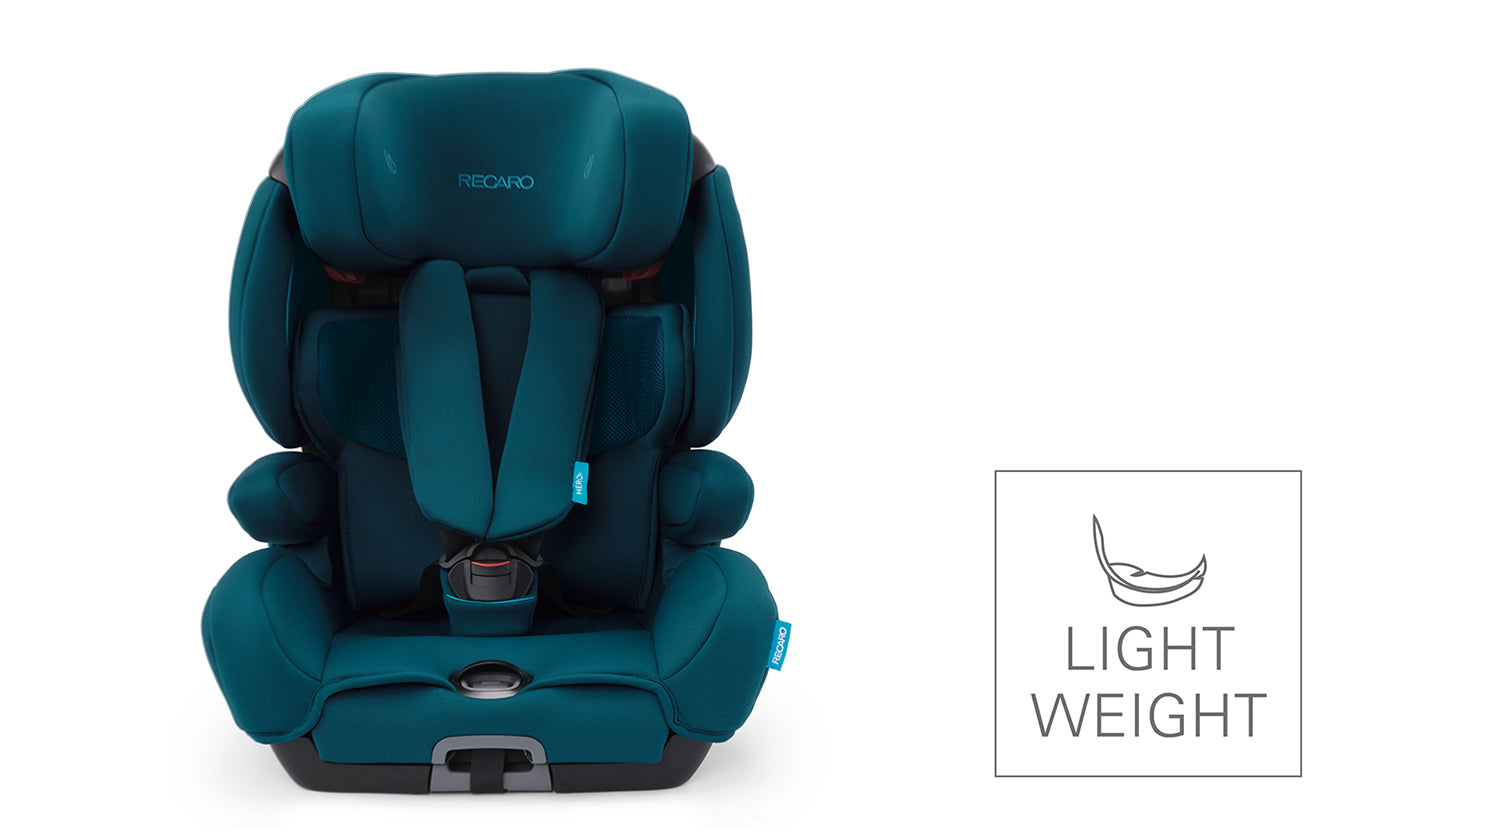 car-seat-tian-elite-design-image-3.jpg